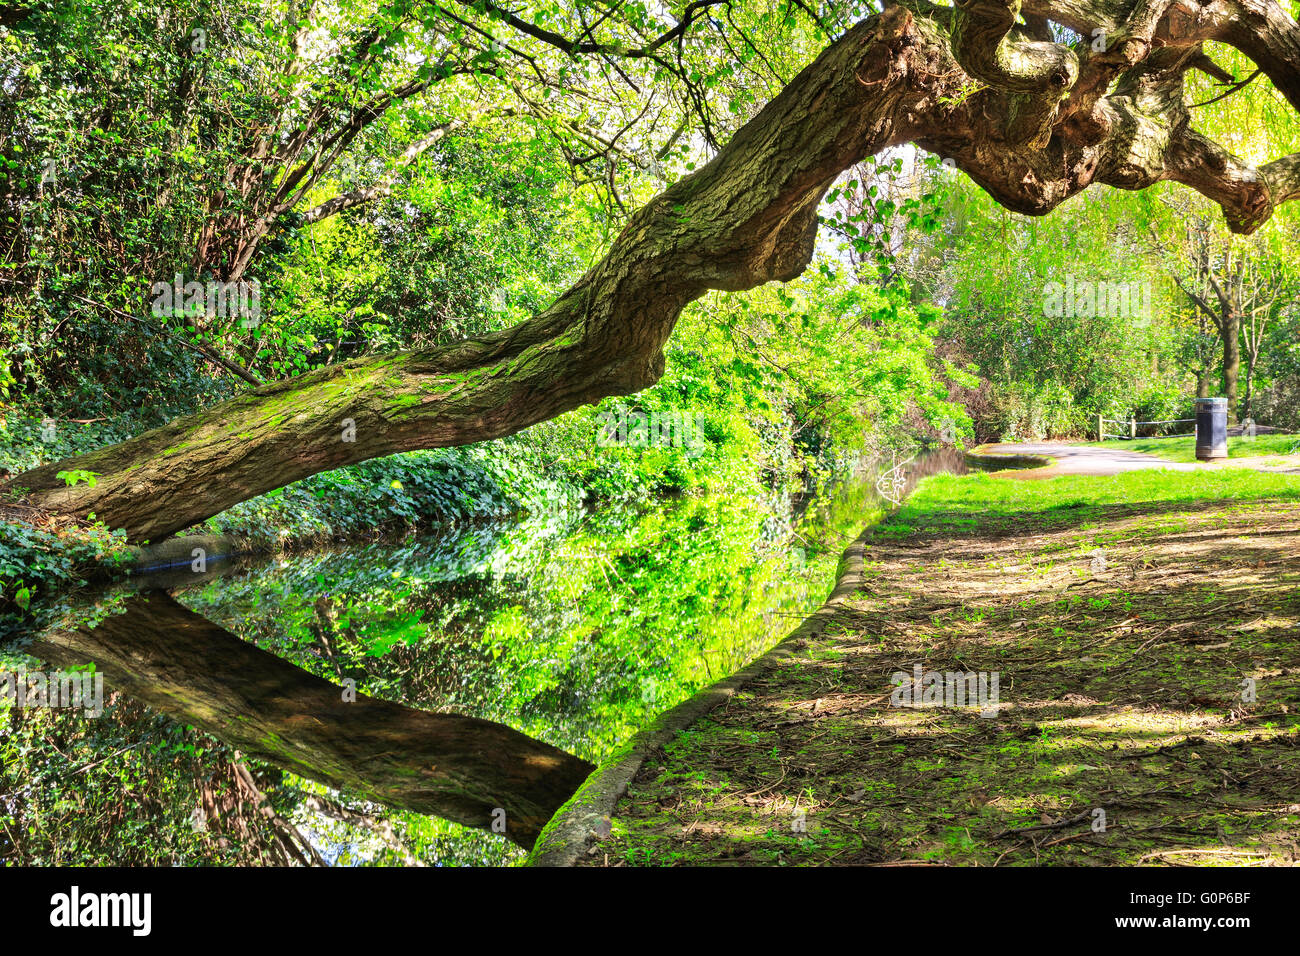 A weeping willow tree leans over a canal and towpath with dappled light at New River Walk, Canonbury, London - Stock Image